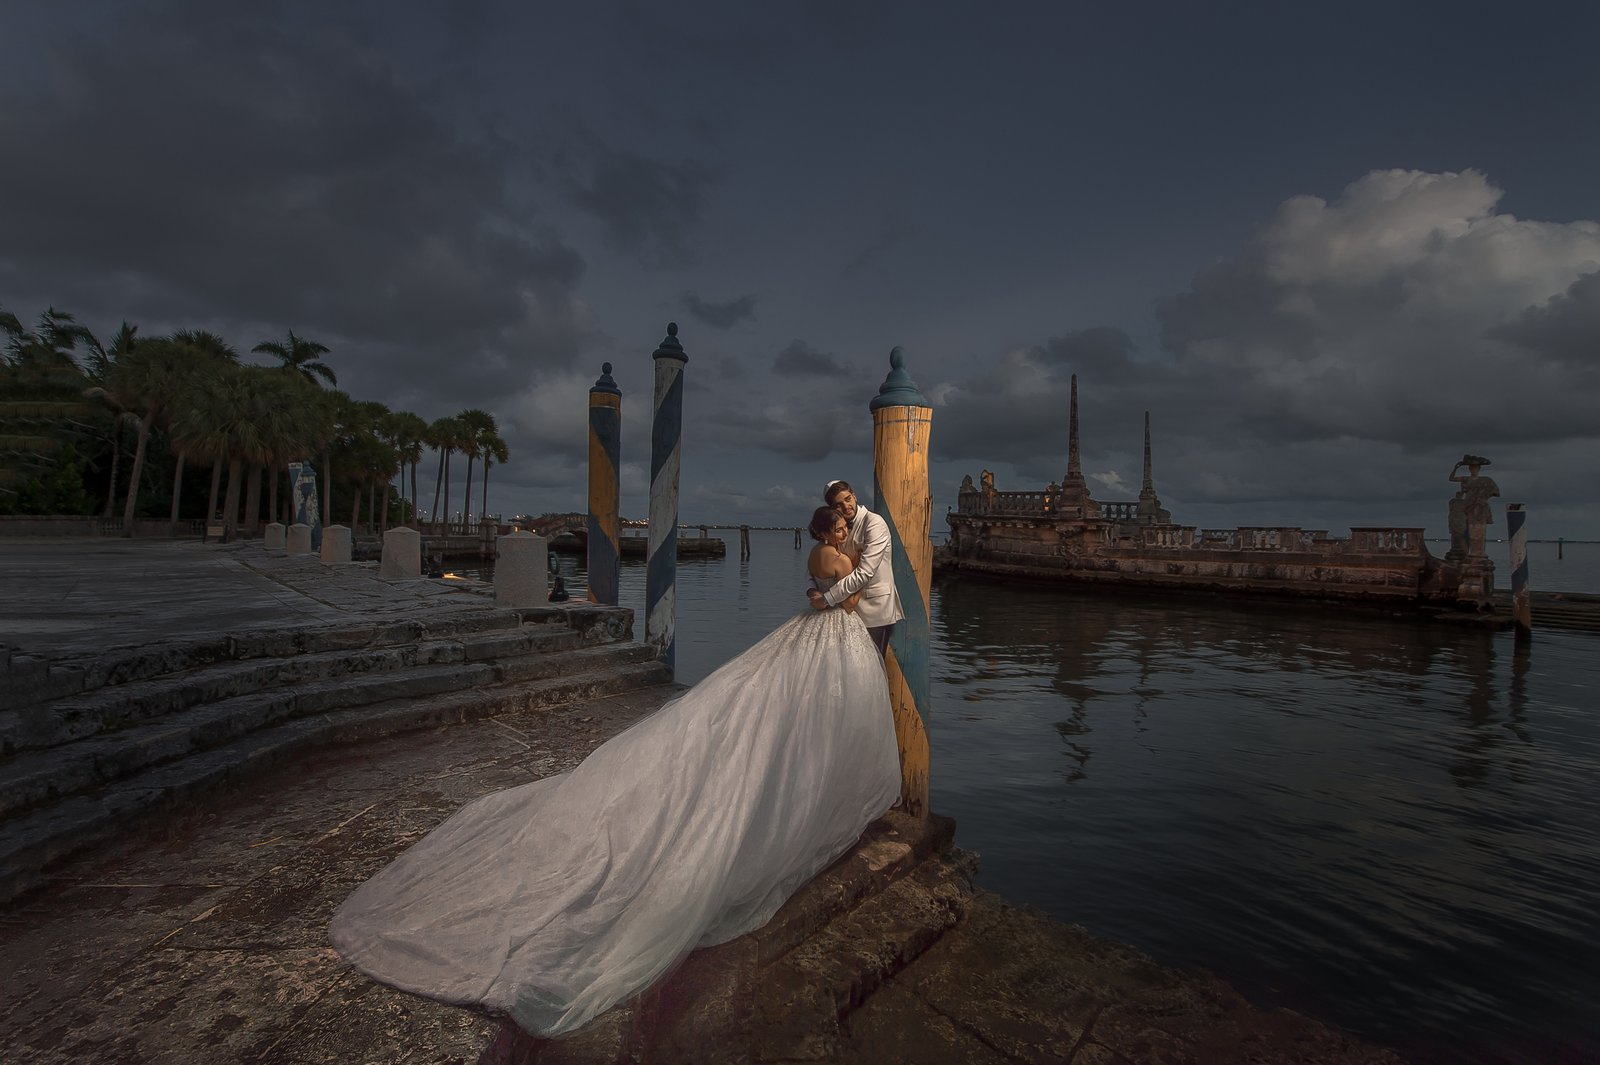 One or two photographers for your wedding? Second shooter or no second shooter?, Miami Wedding Photographers | Häring Photography, Indian Wedding Photographer in Florida, Best Muslim, Hindu - South East Asian Wedding Photographers